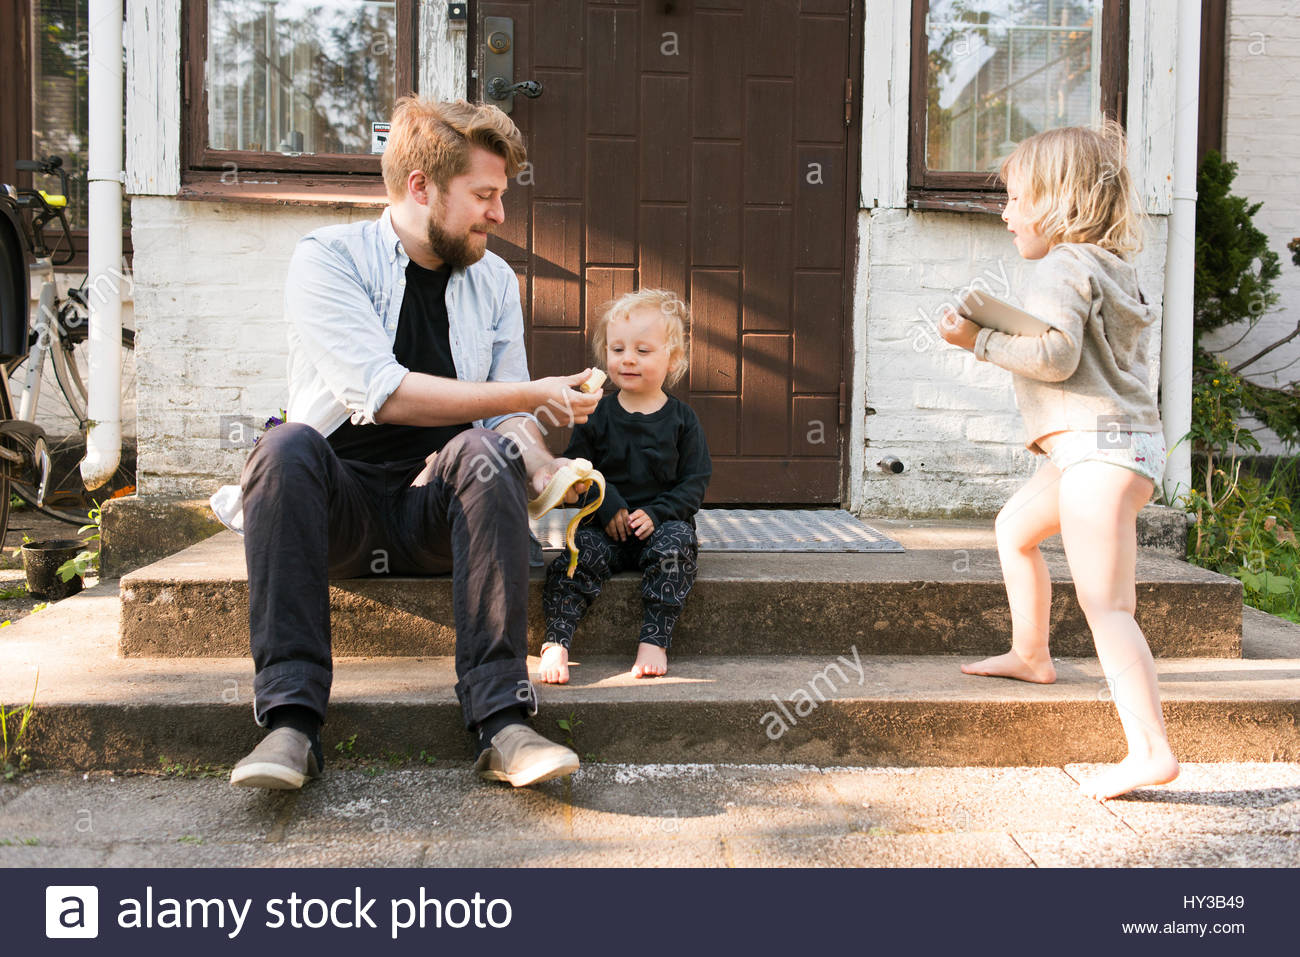 Sweden, Skane Father sitting on steps and feeding son (2-3) - Stock Image